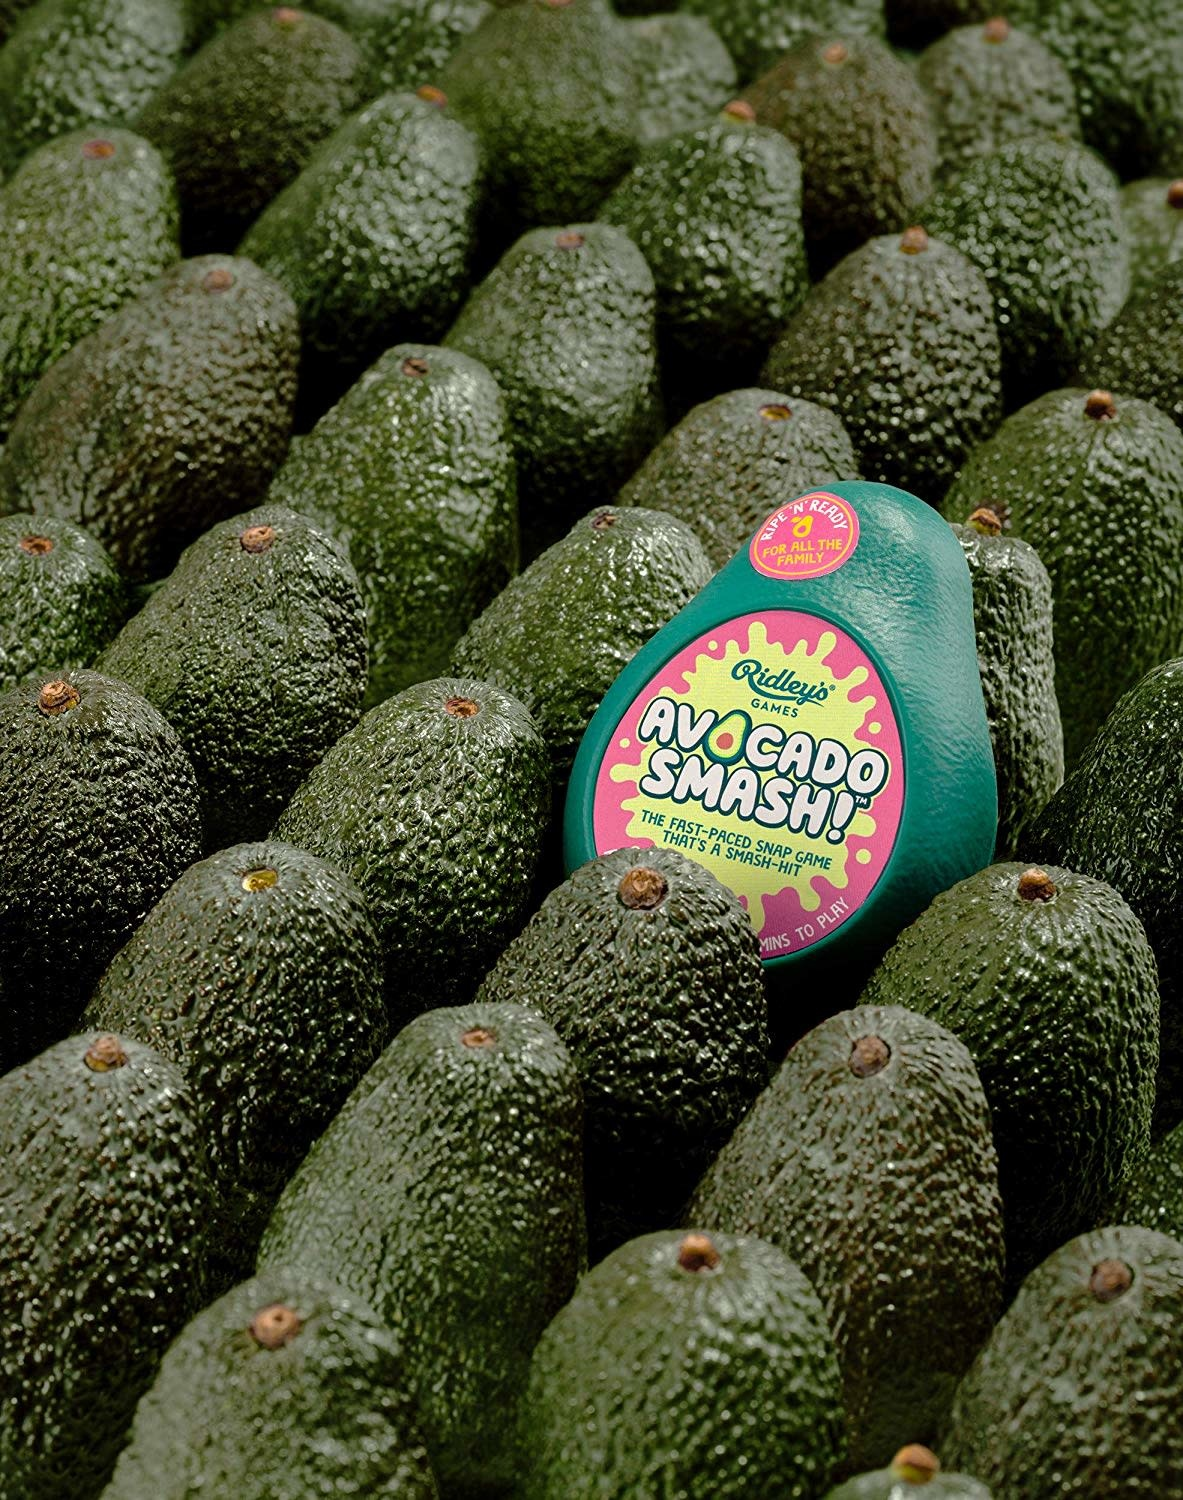 Avocado Smash by Ridley's Games